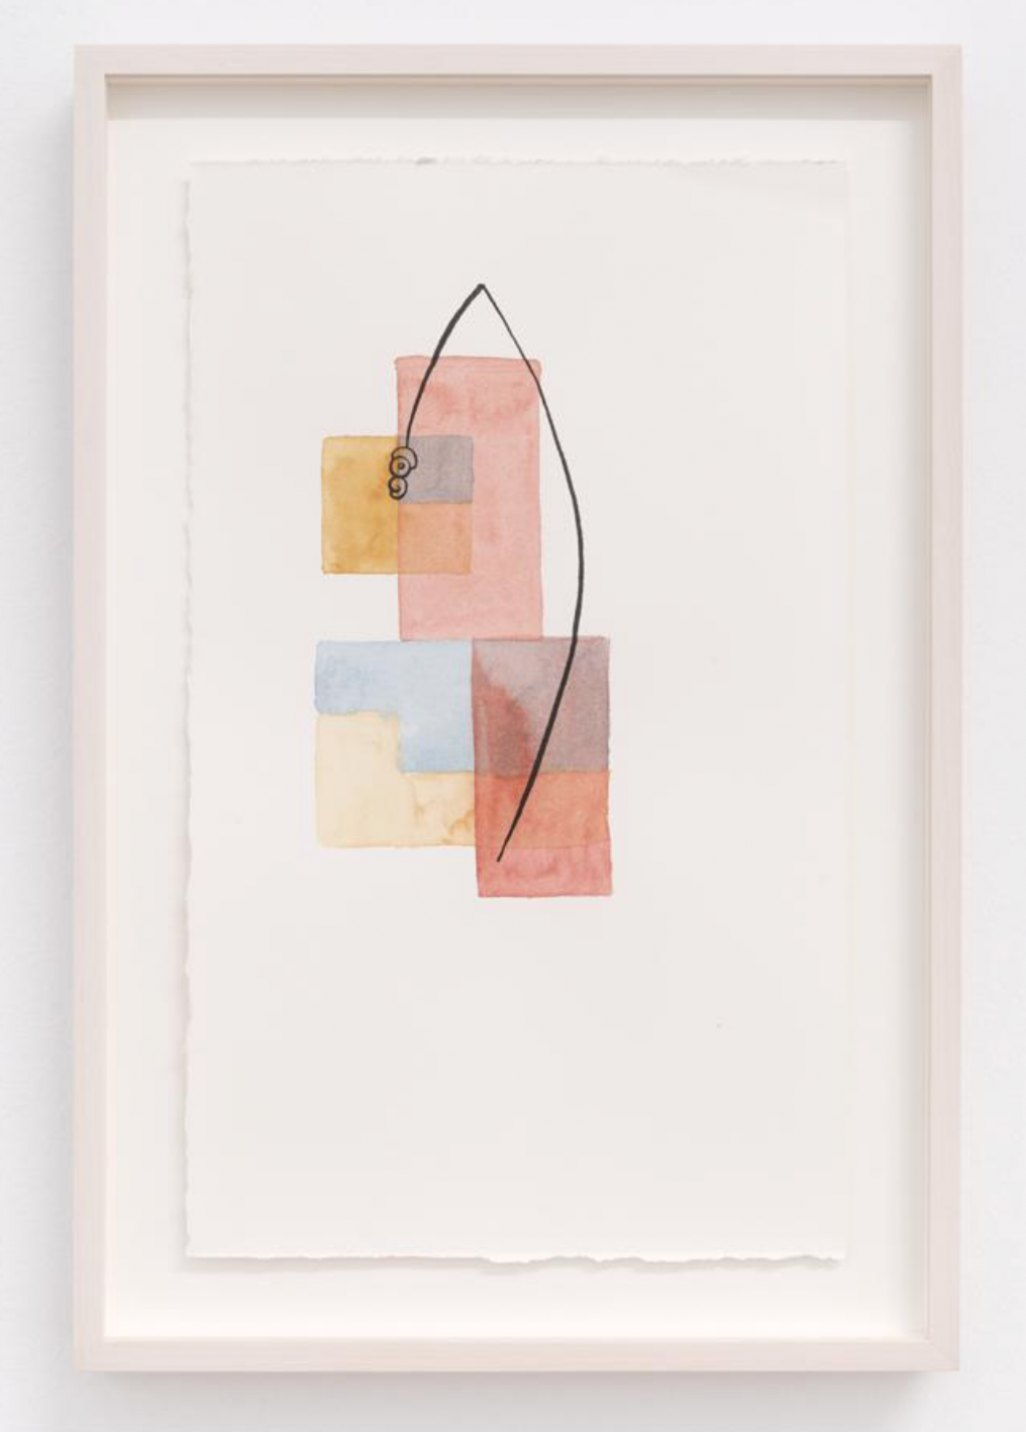 Mariana Castillo Deball,<em> Pedernal II,</em> 2017, watercolor on paper, 35,5 × 21,5 cm - Mendes Wood DM